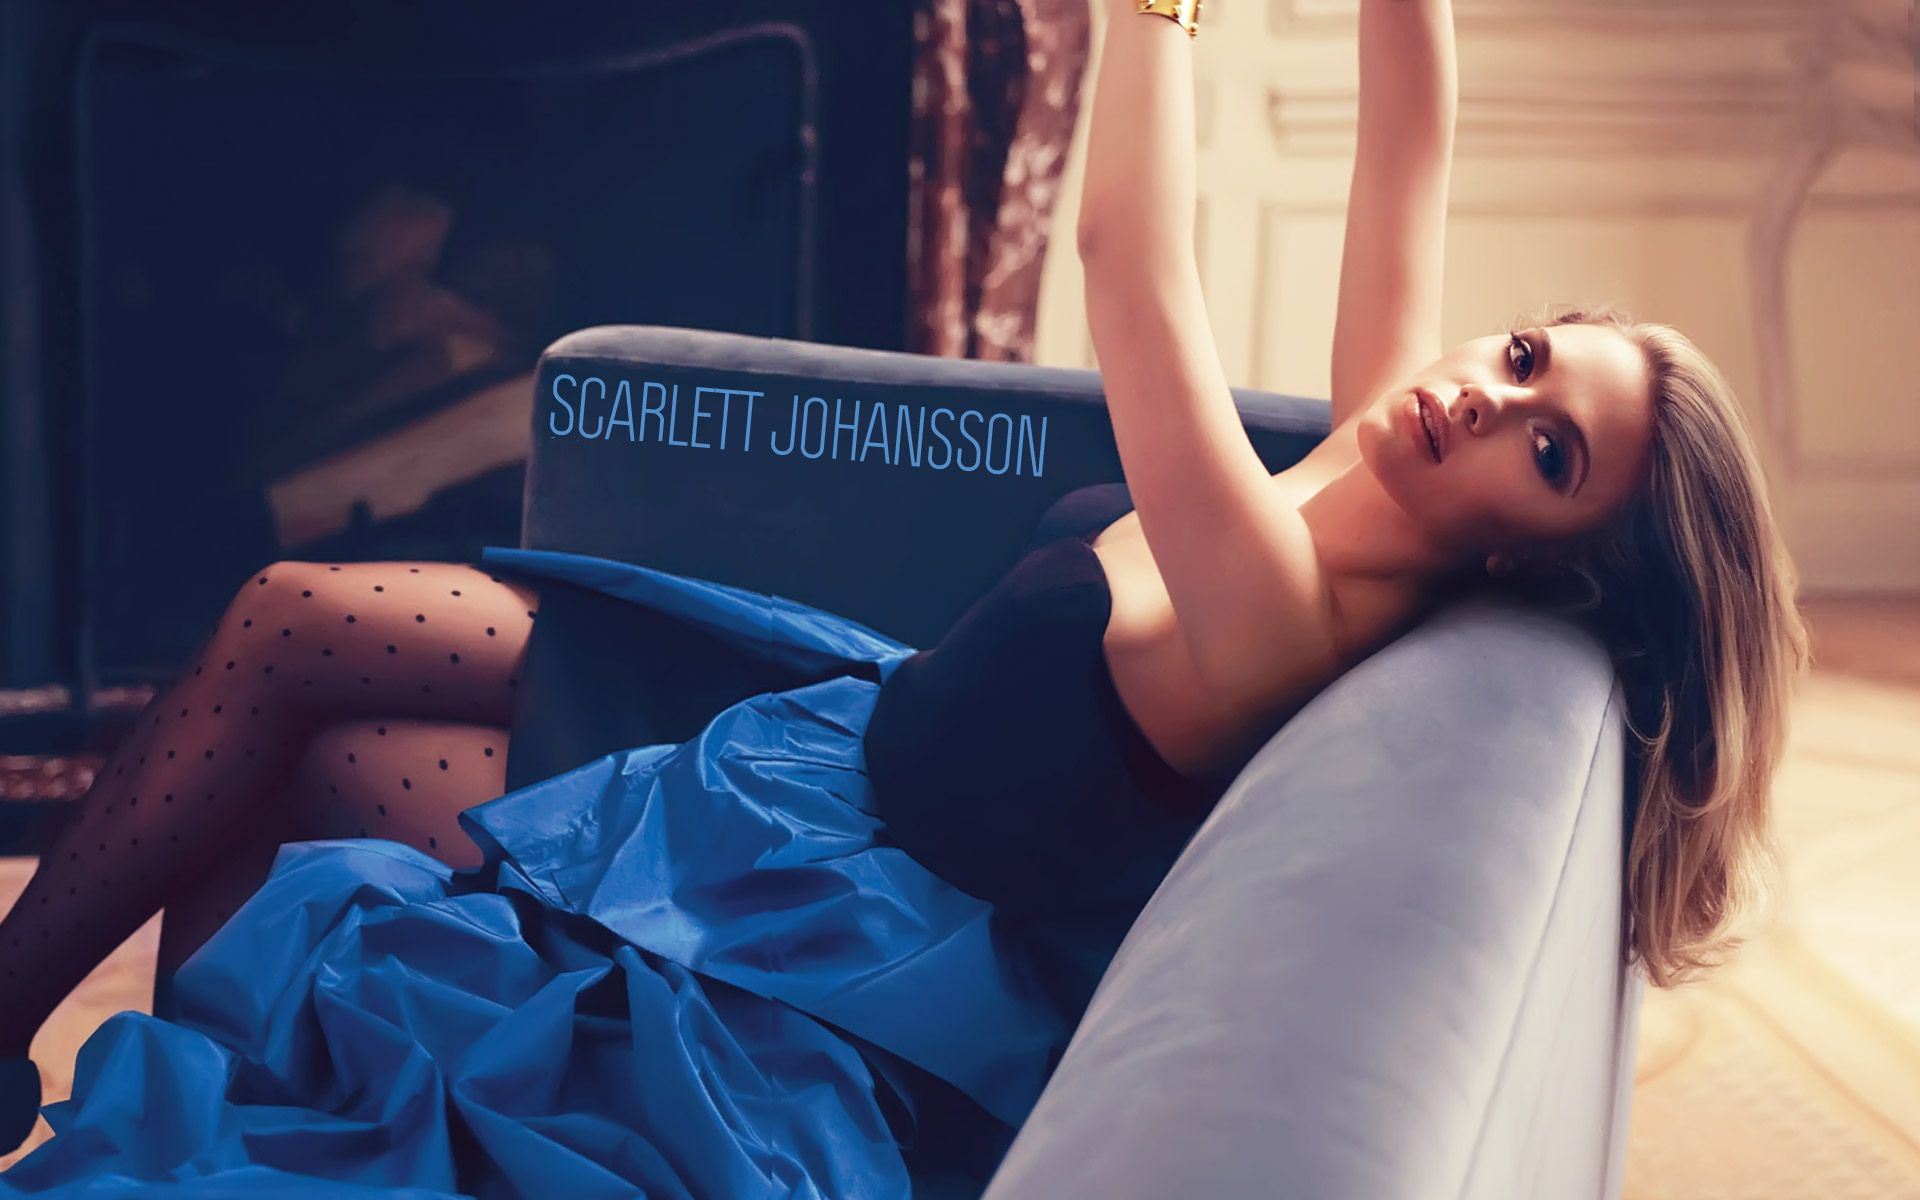 Scarlett Johansson Wallpaper: Scarlett Johansson New Hot HD Wallpaper Scarlett Johansson